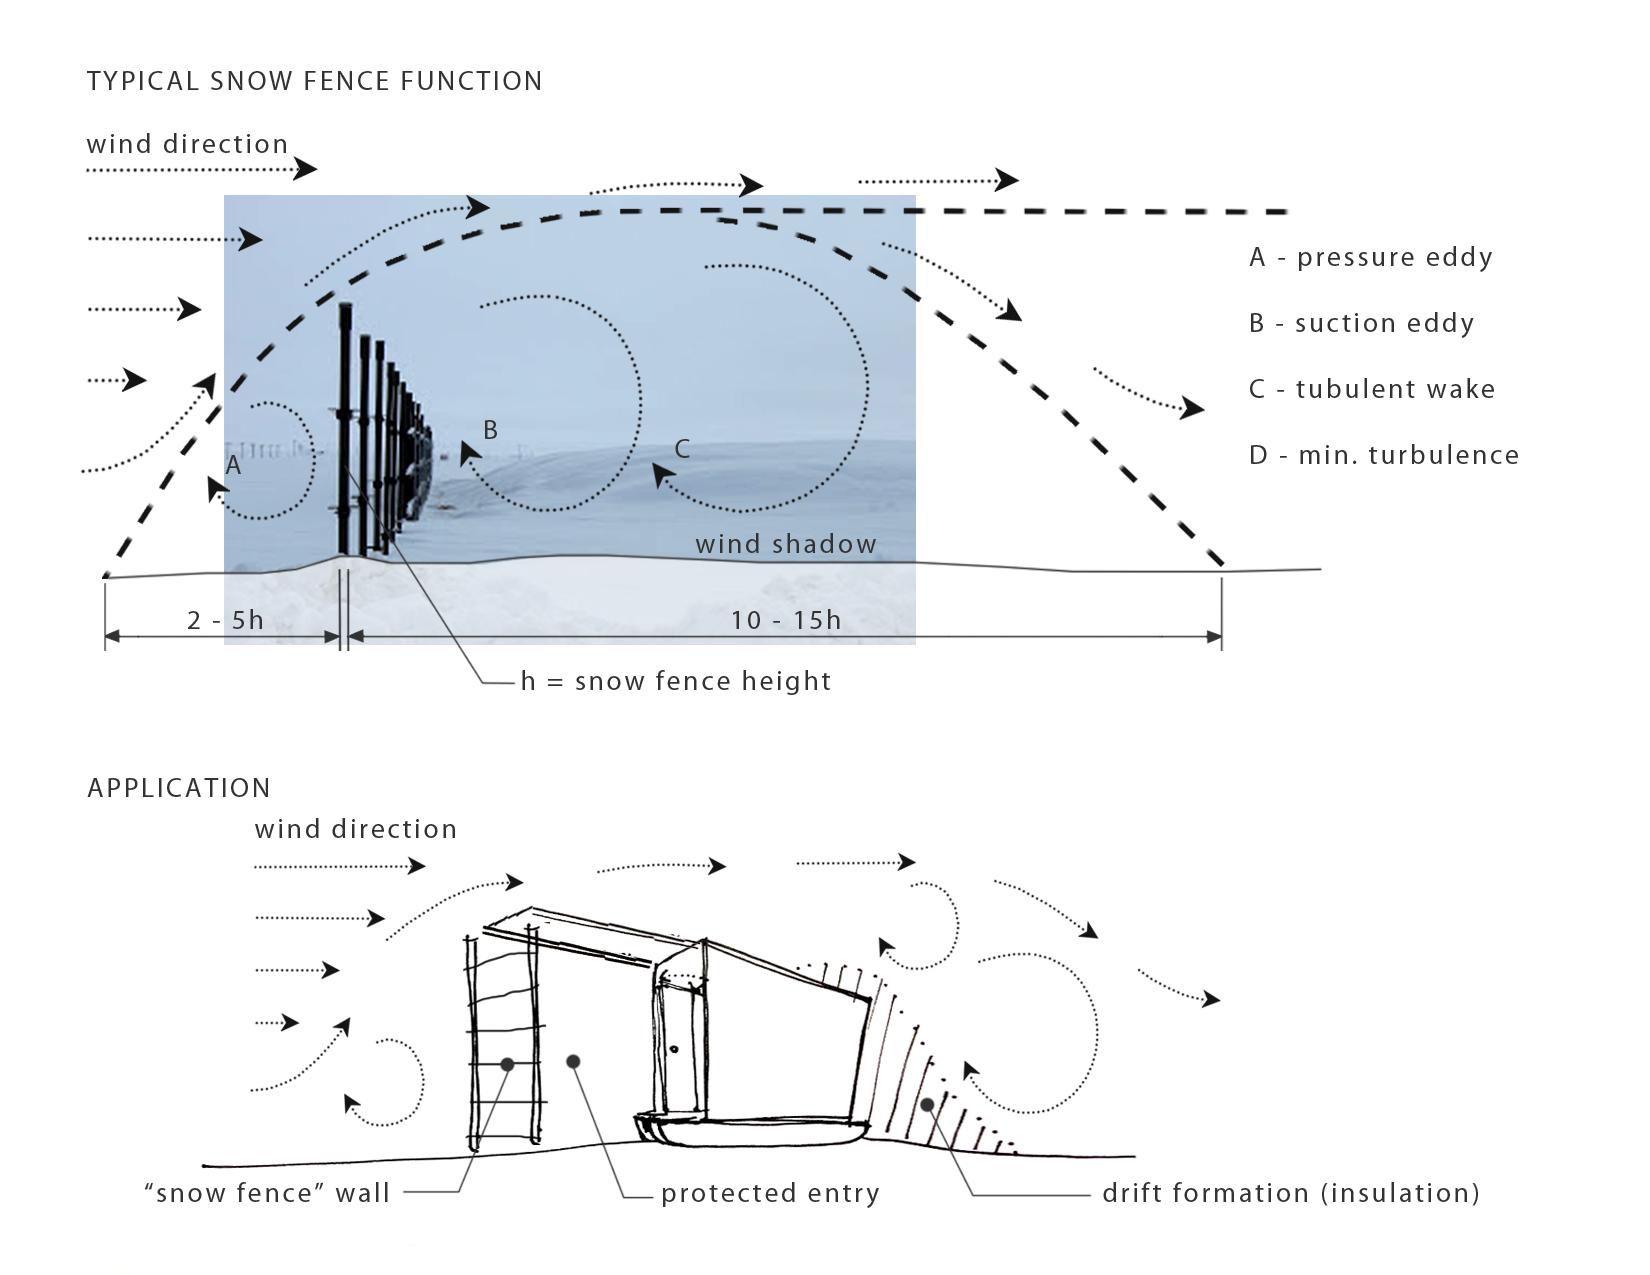 Snow fence observations and design potential: creating a protected entry zone to direct snow where it can be more useful or kept out of the way.